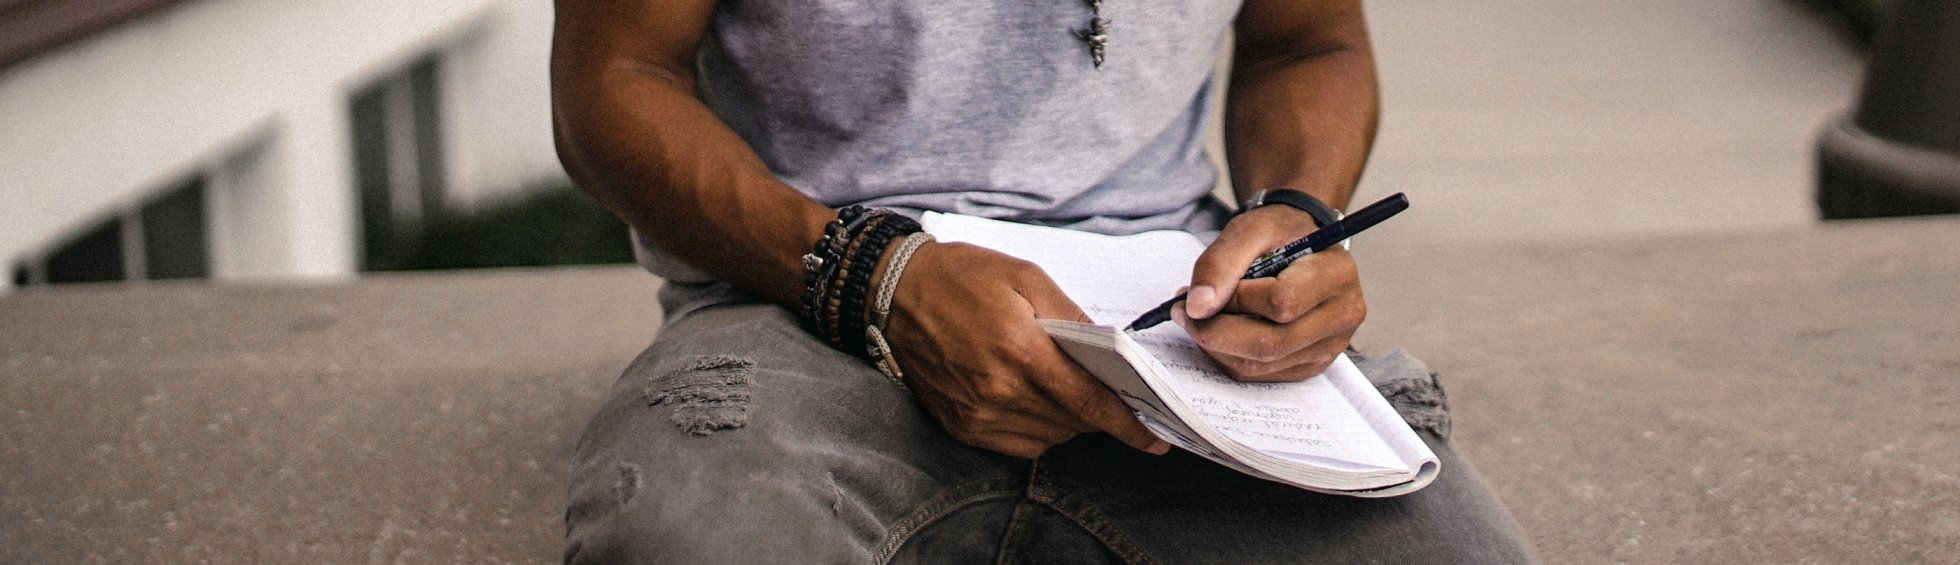 Man writing in notebook, cropped photo by Brad Neathery (@bradneathery) on Unsplash